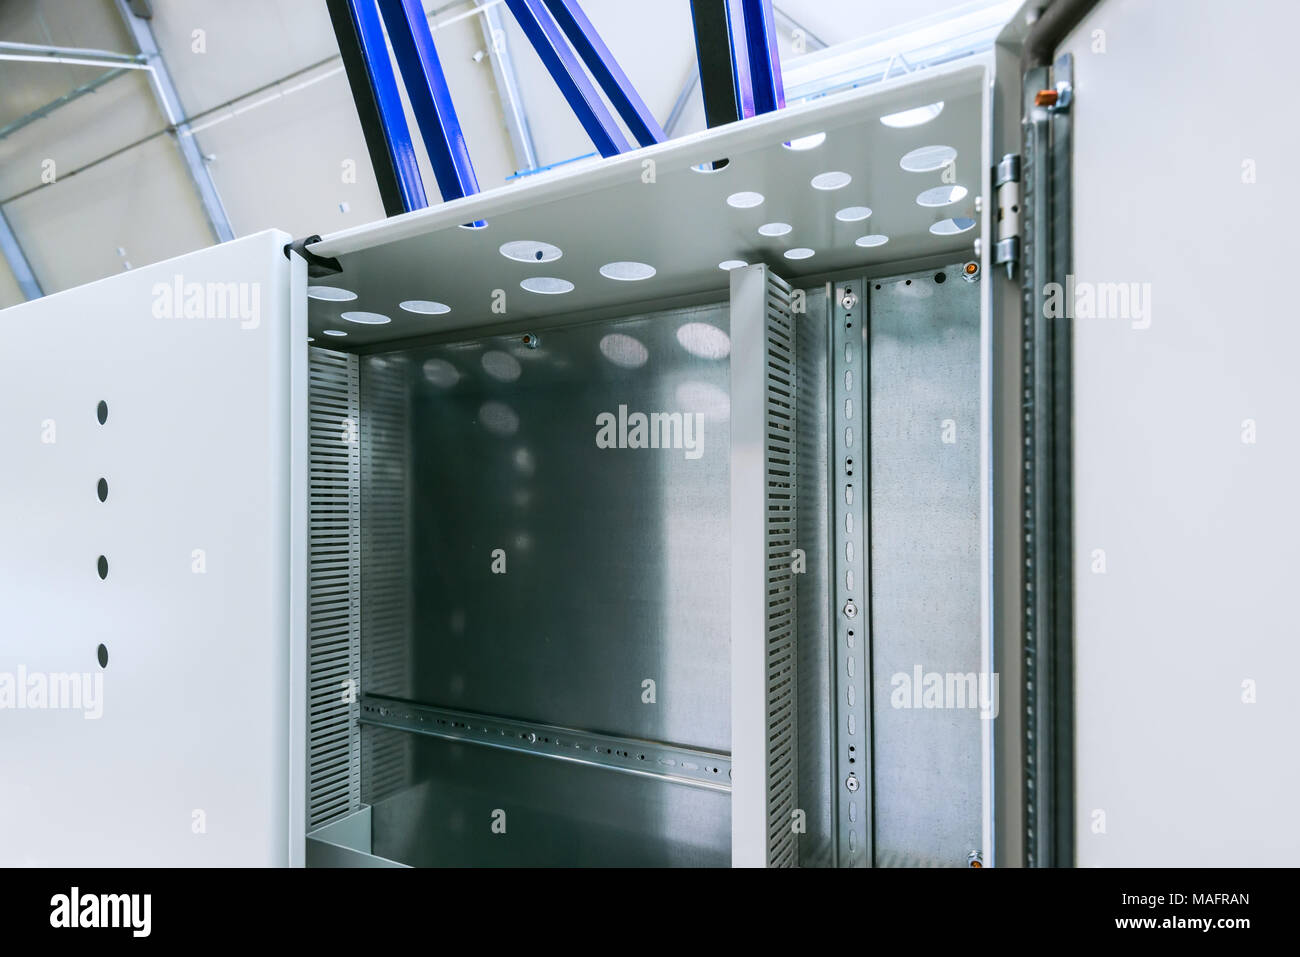 Industrial enclosure cabinet for electrical equipment with lamp and cooling unit. - Stock Image